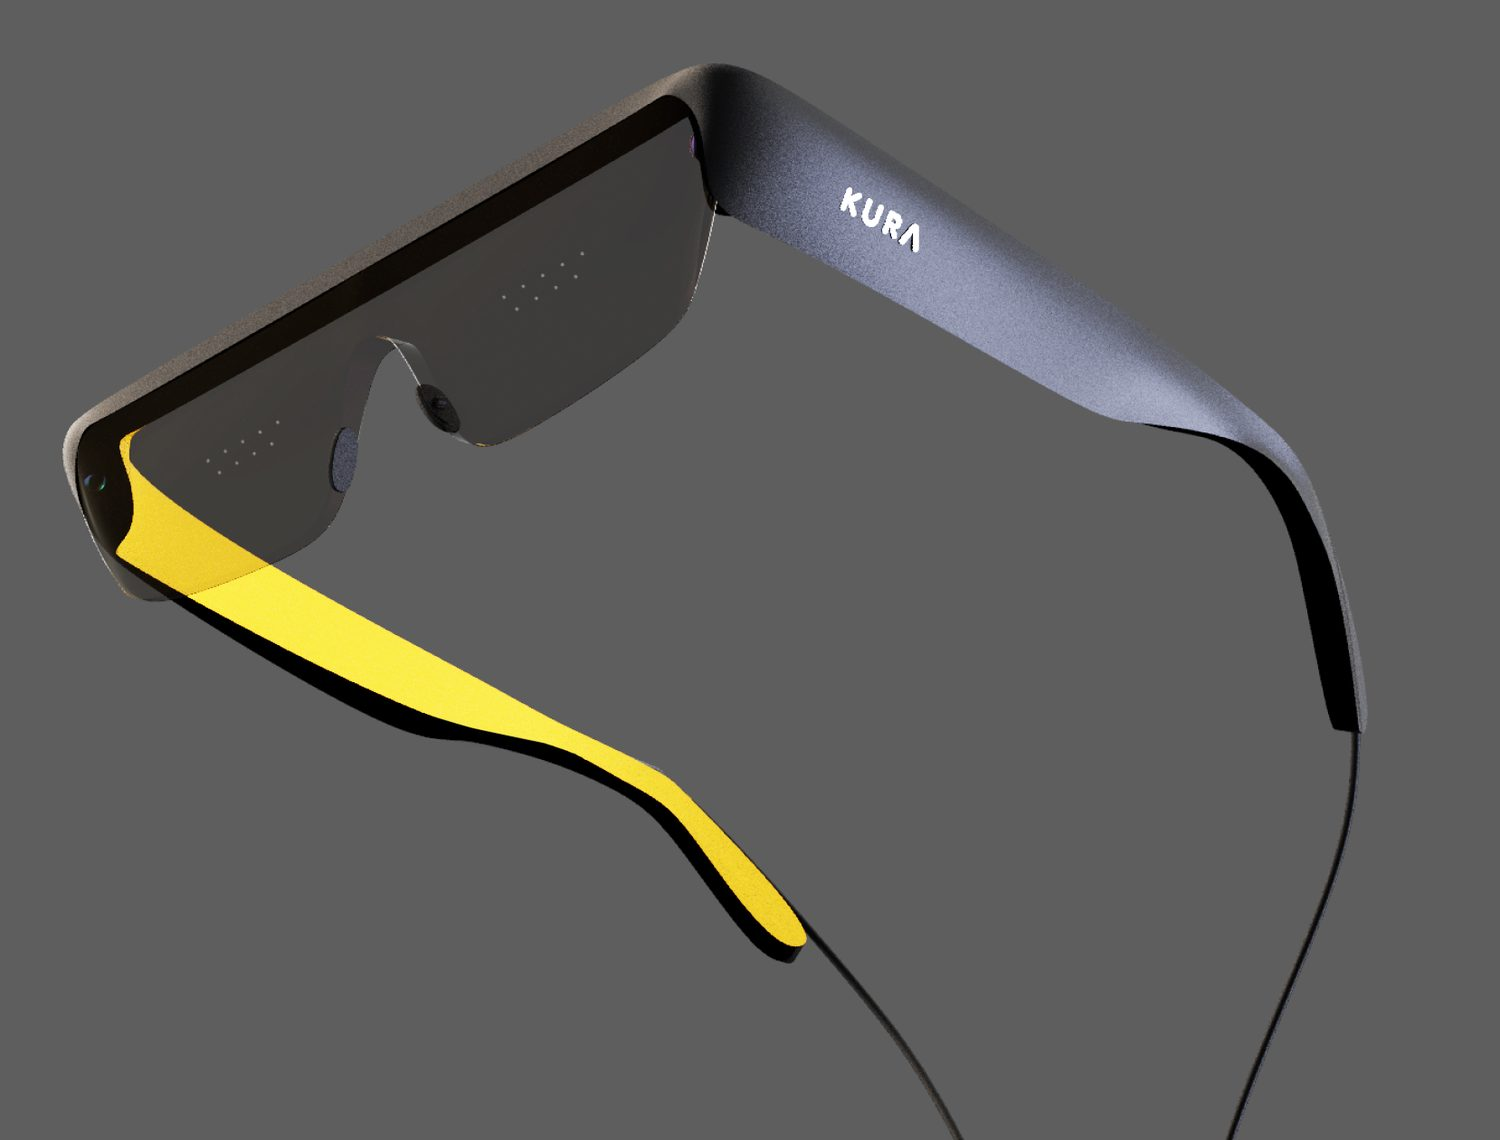 Kura AR Glasses